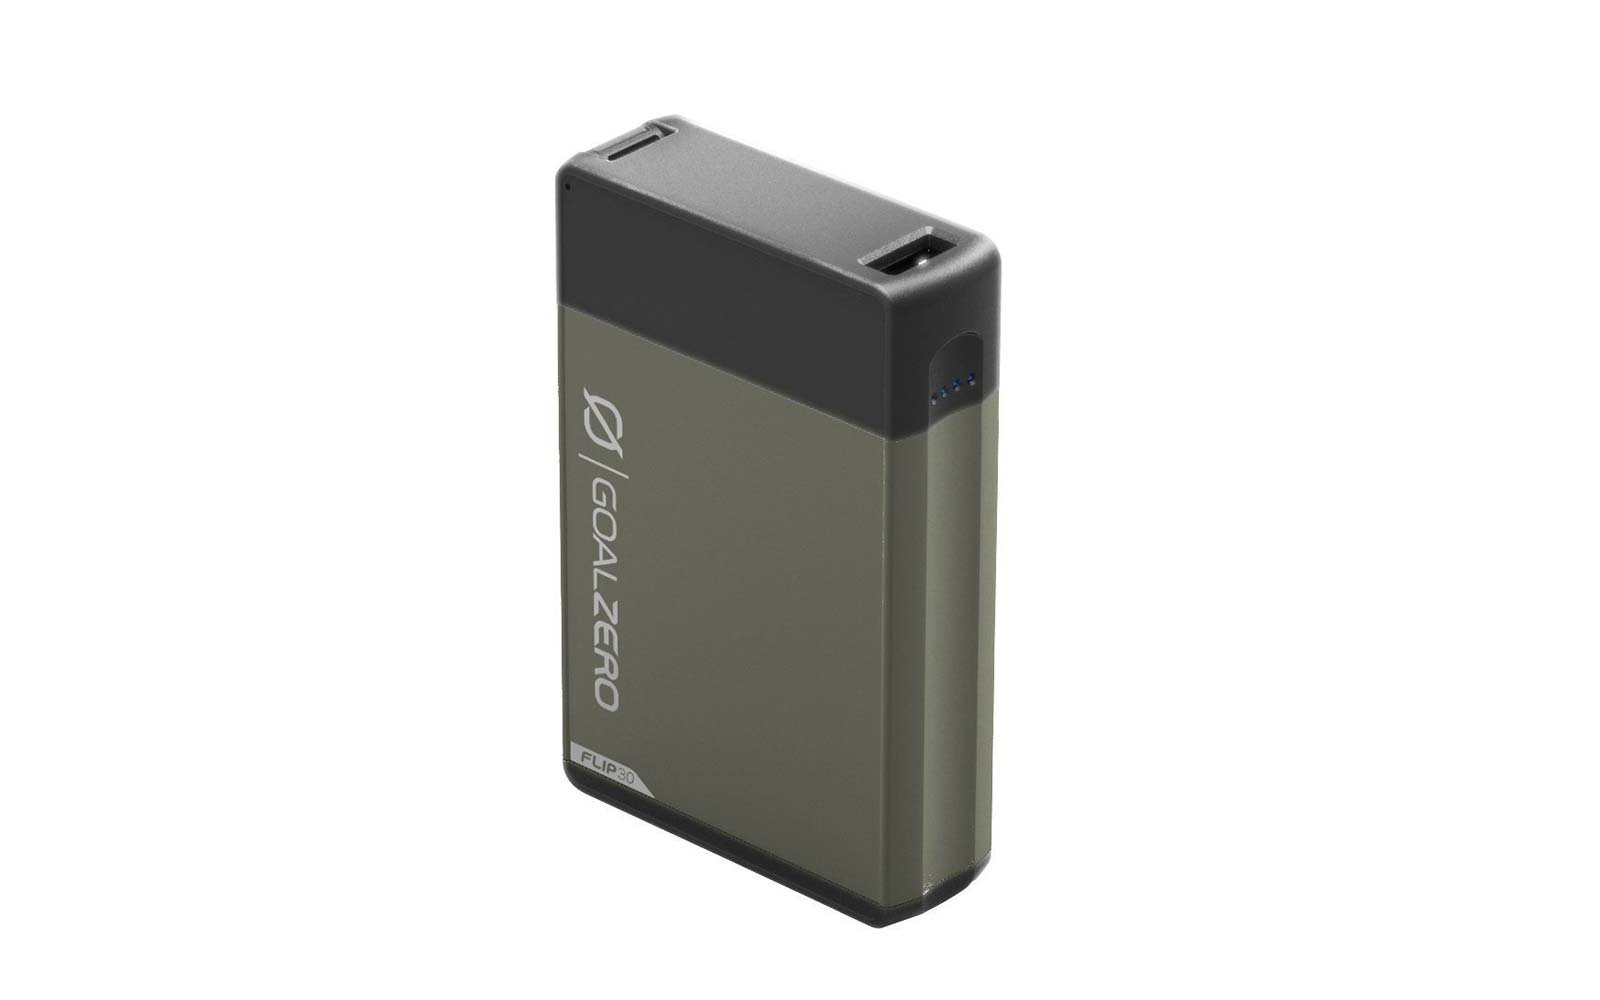 Travel Portable Phone Battery Charger Goal Zero